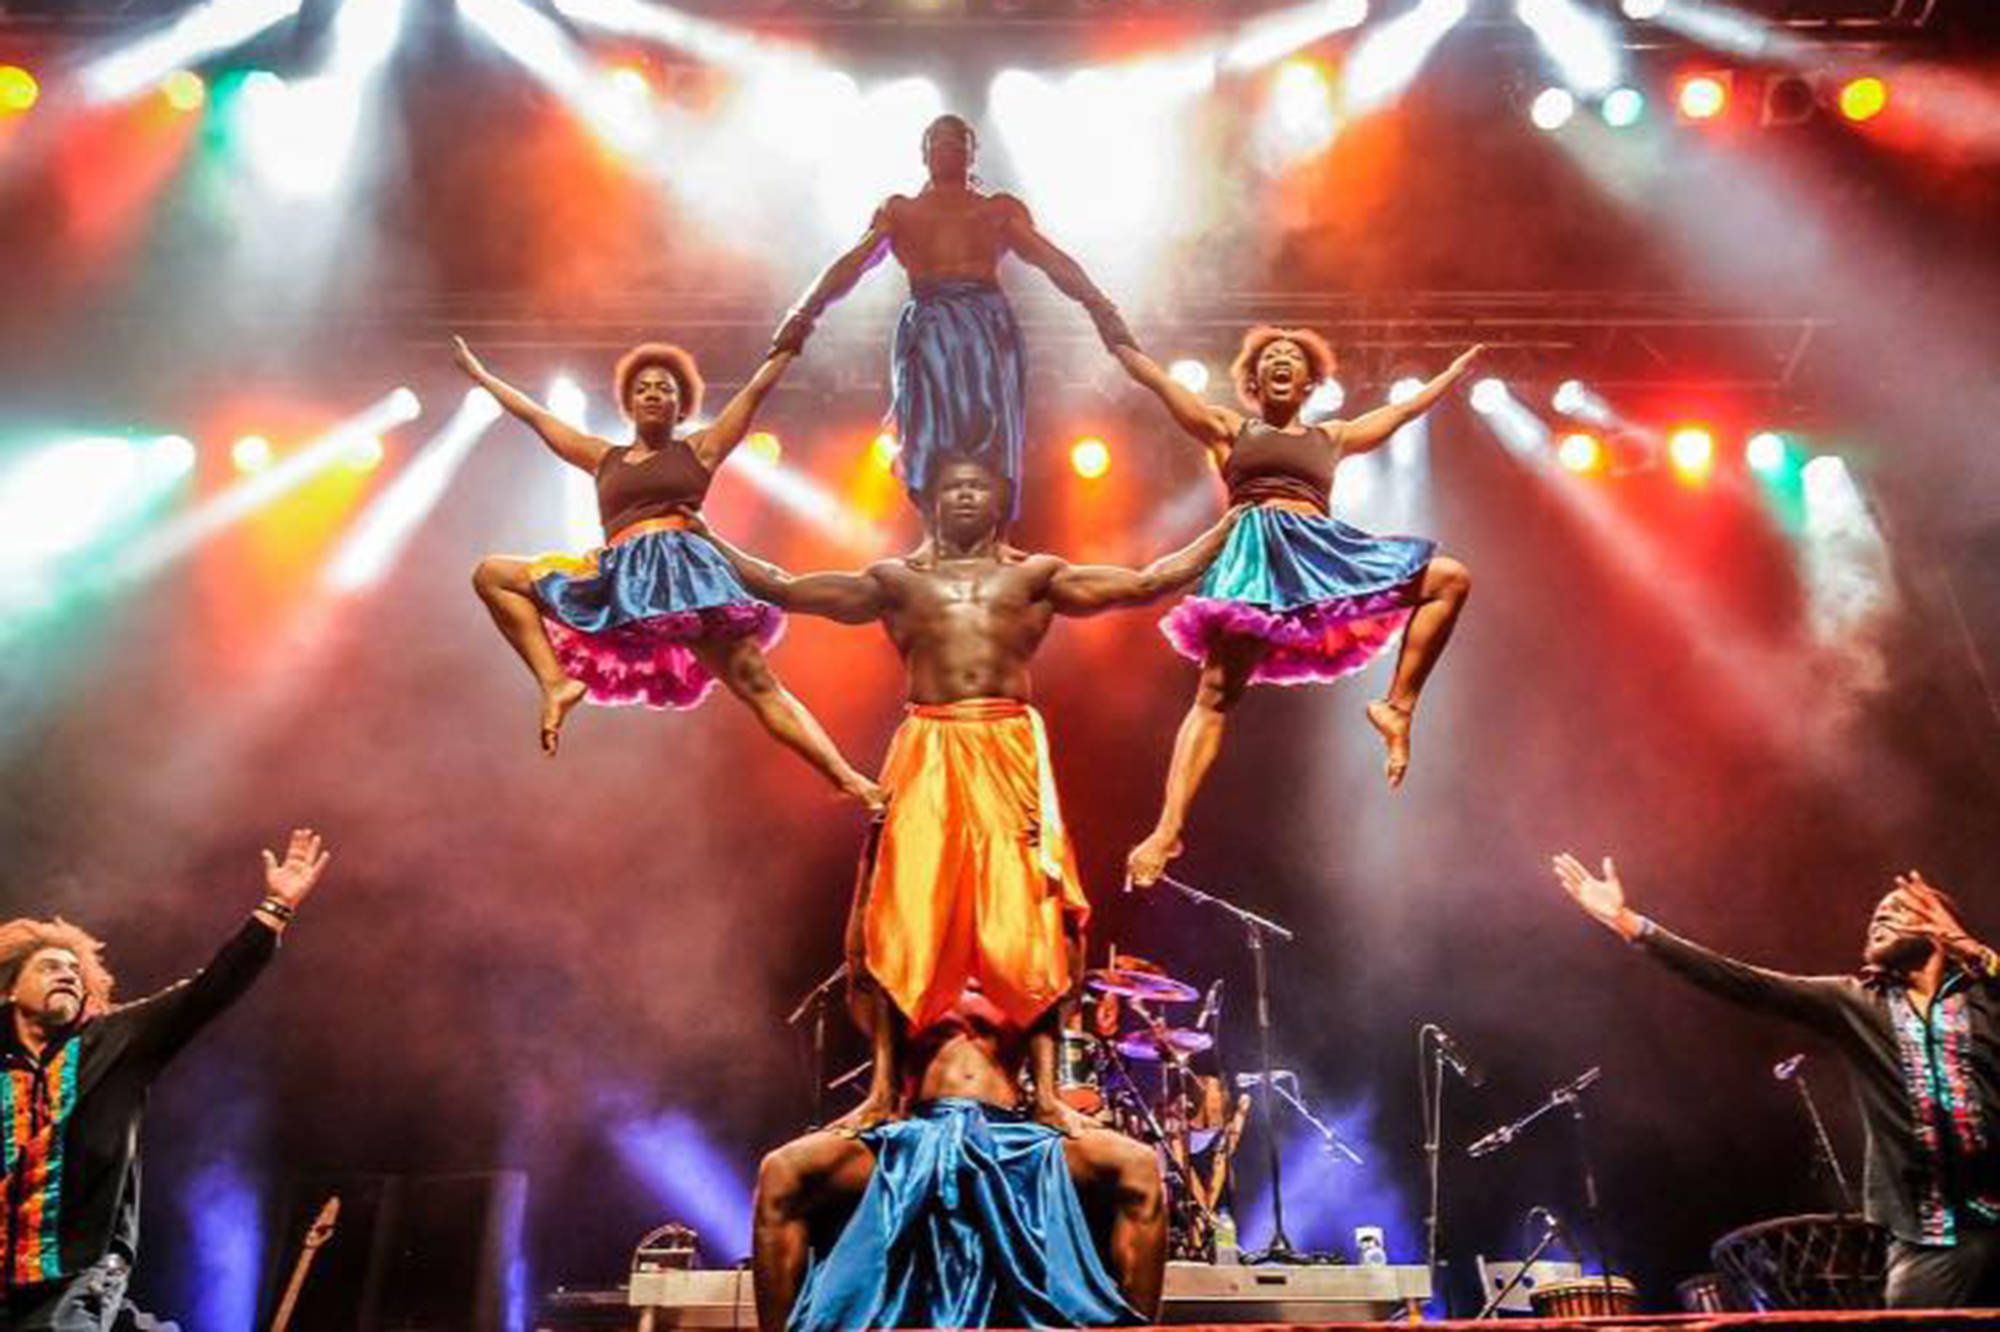 Circus Kalabant�� bring a dazzling display of skill and physical agility to the 28th Annual Roots and Blues Festival, August 13-16. (Contributed)                                Circus Kalabanté bring a dazzling display of skill and physical agility to the 28th Annual Roots and Blues Festival, August 13-16. (Contributed)